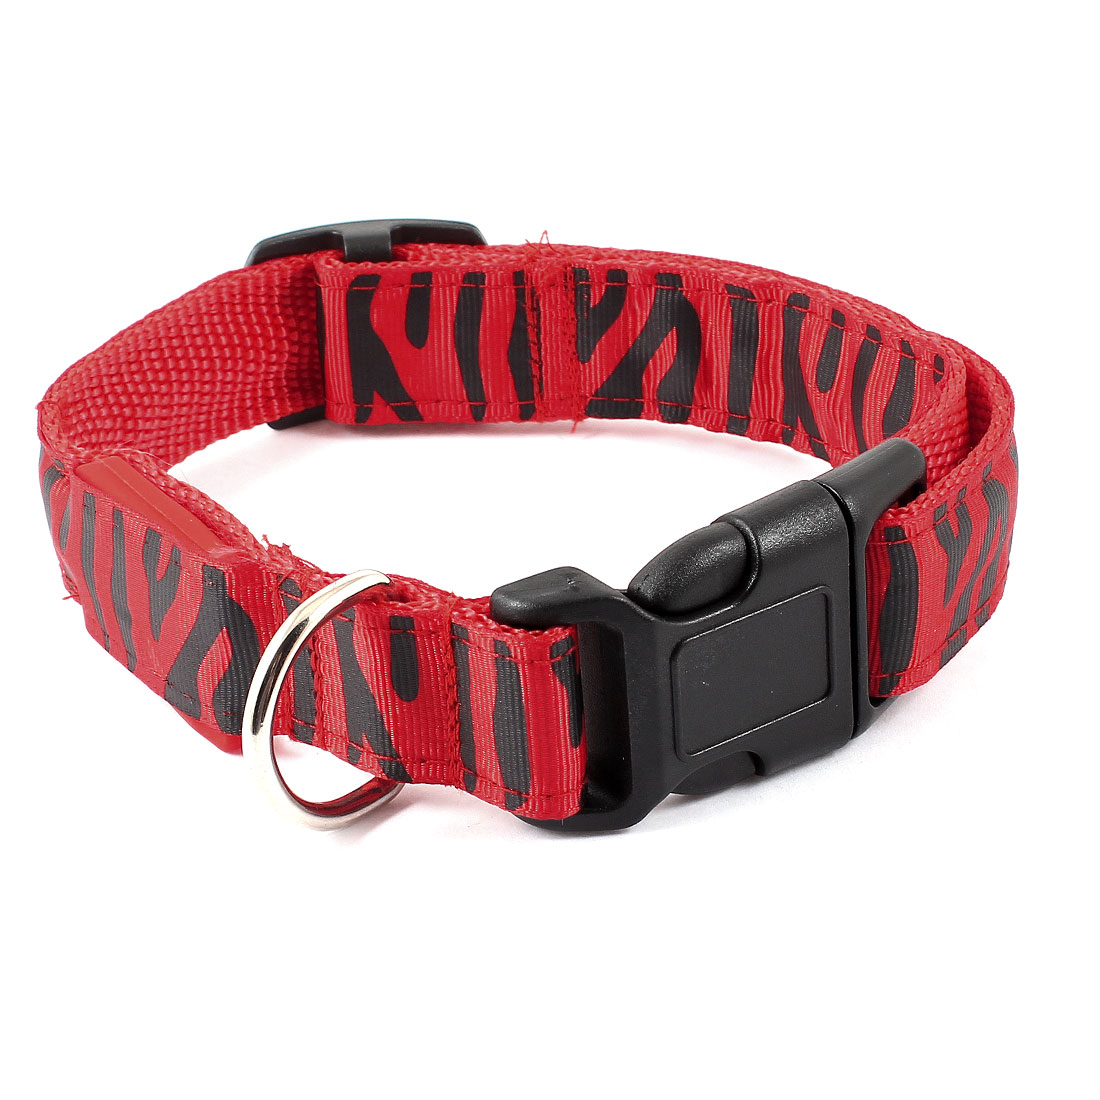 Pet Dog Doggy Release Buckle 3 Modes LED Flash Light Night Safety Zebra Print Nylon Collar Belt Black Red M